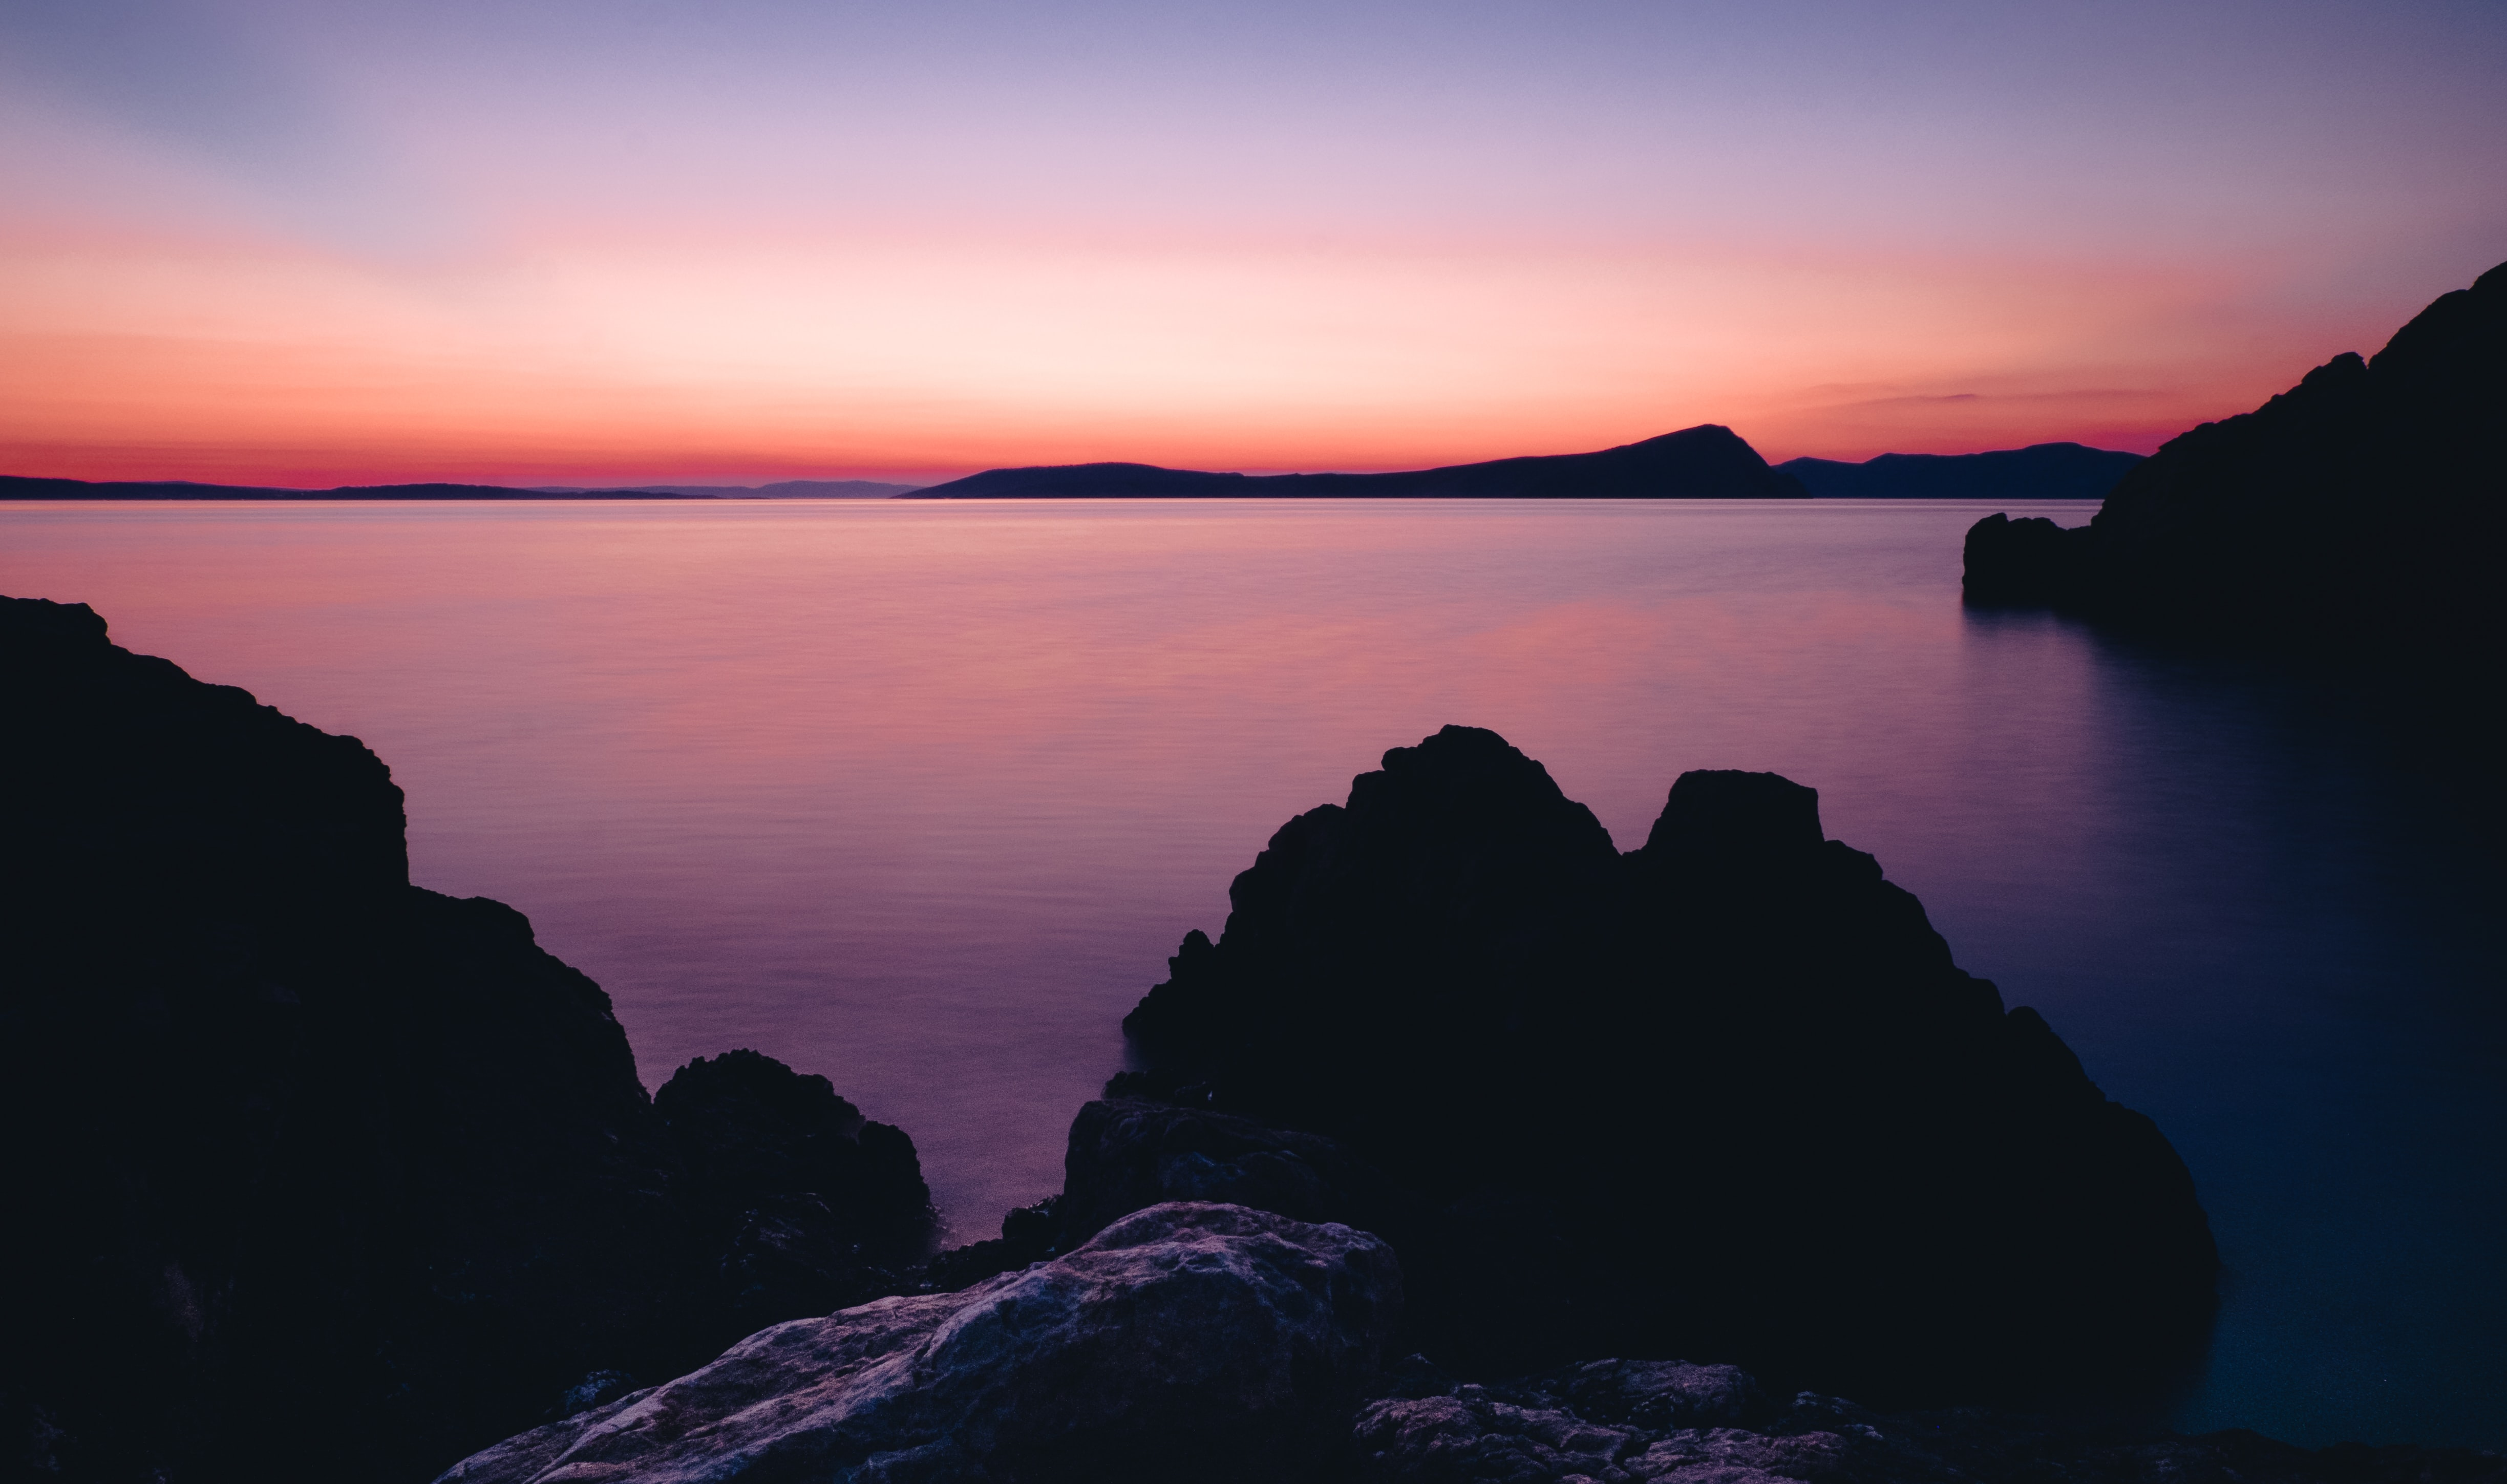 Placid waters under a pink and purple sky, with rocky coasts along the water